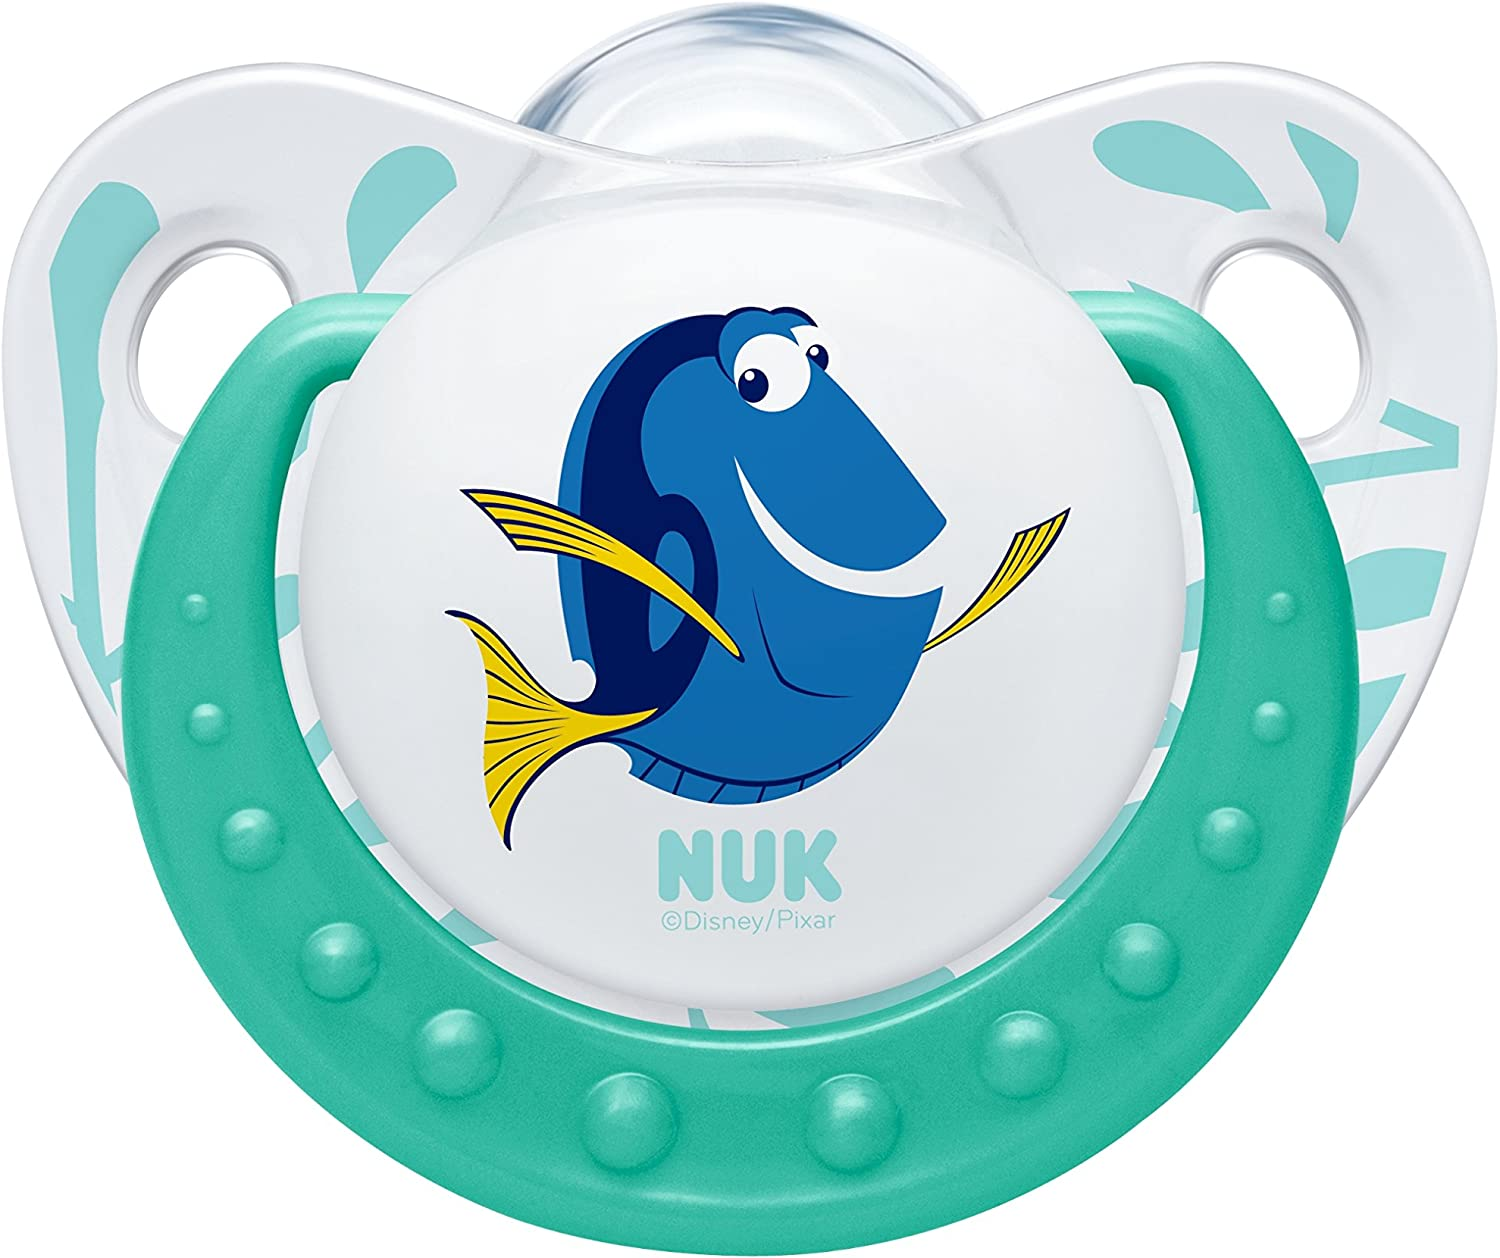 NUK Finding Dory Classic Orthodontic Silicone Soothers 0-6 Months 2 pack